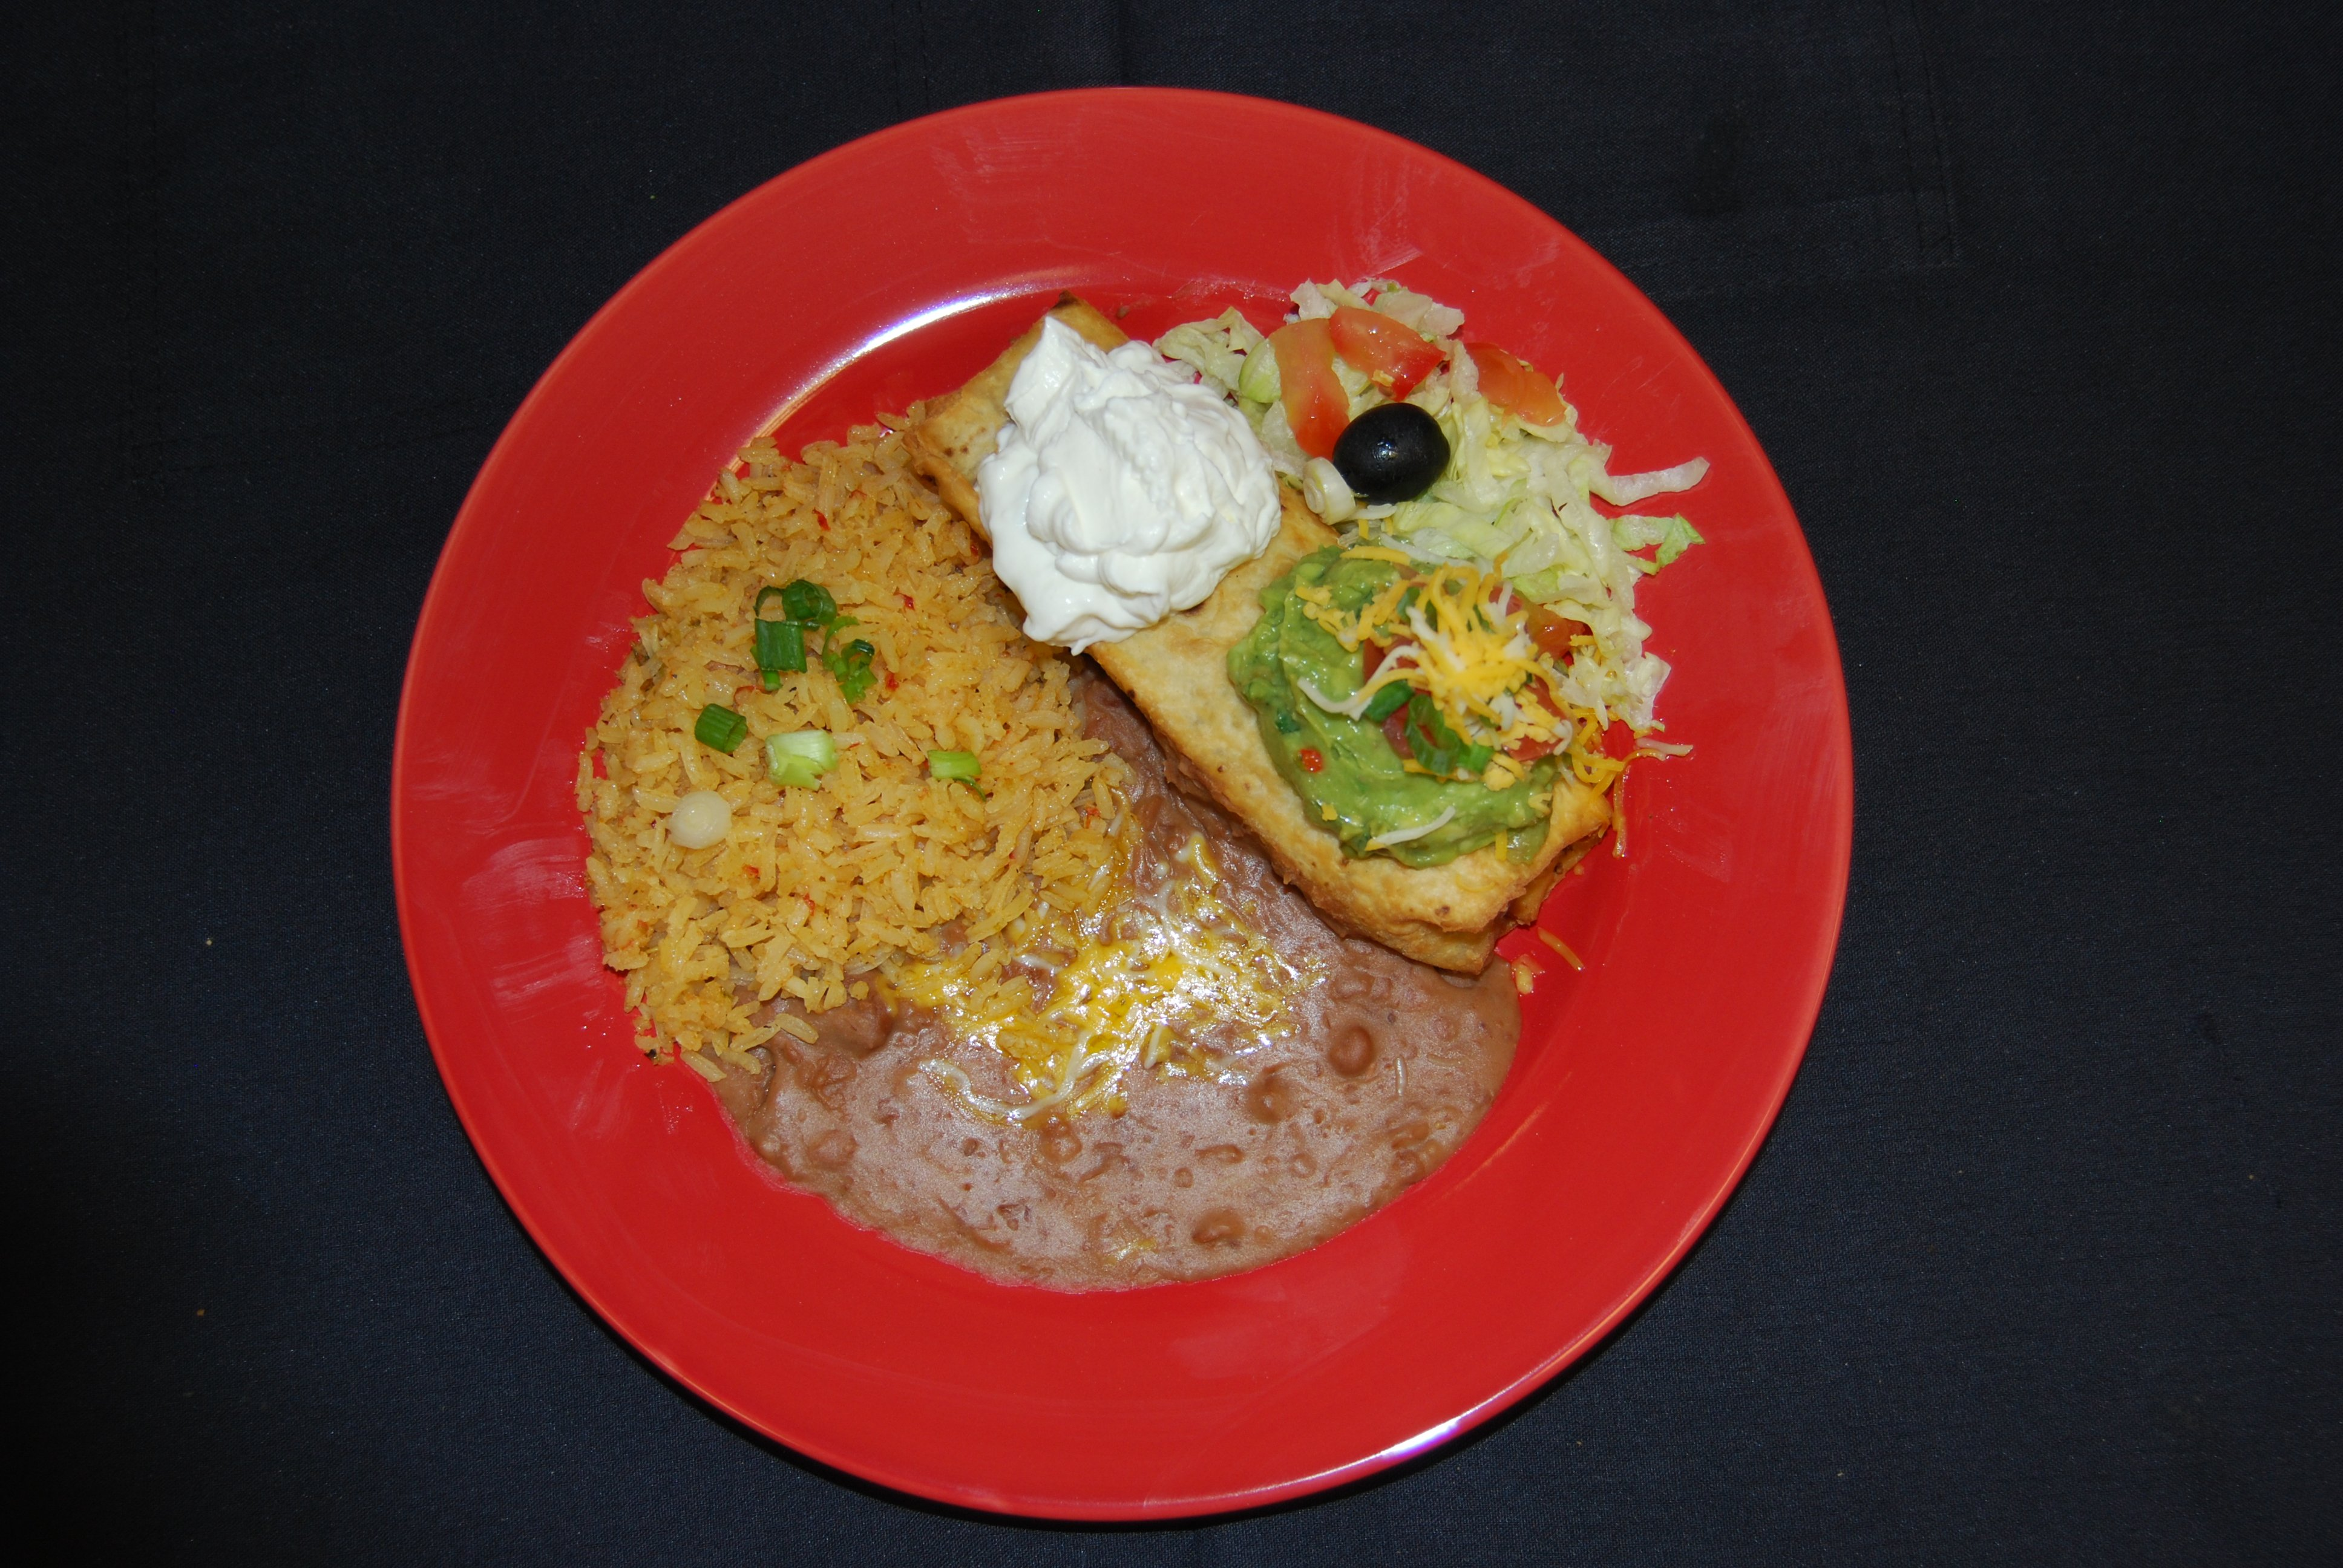 Lunch Special A - Chimichanga